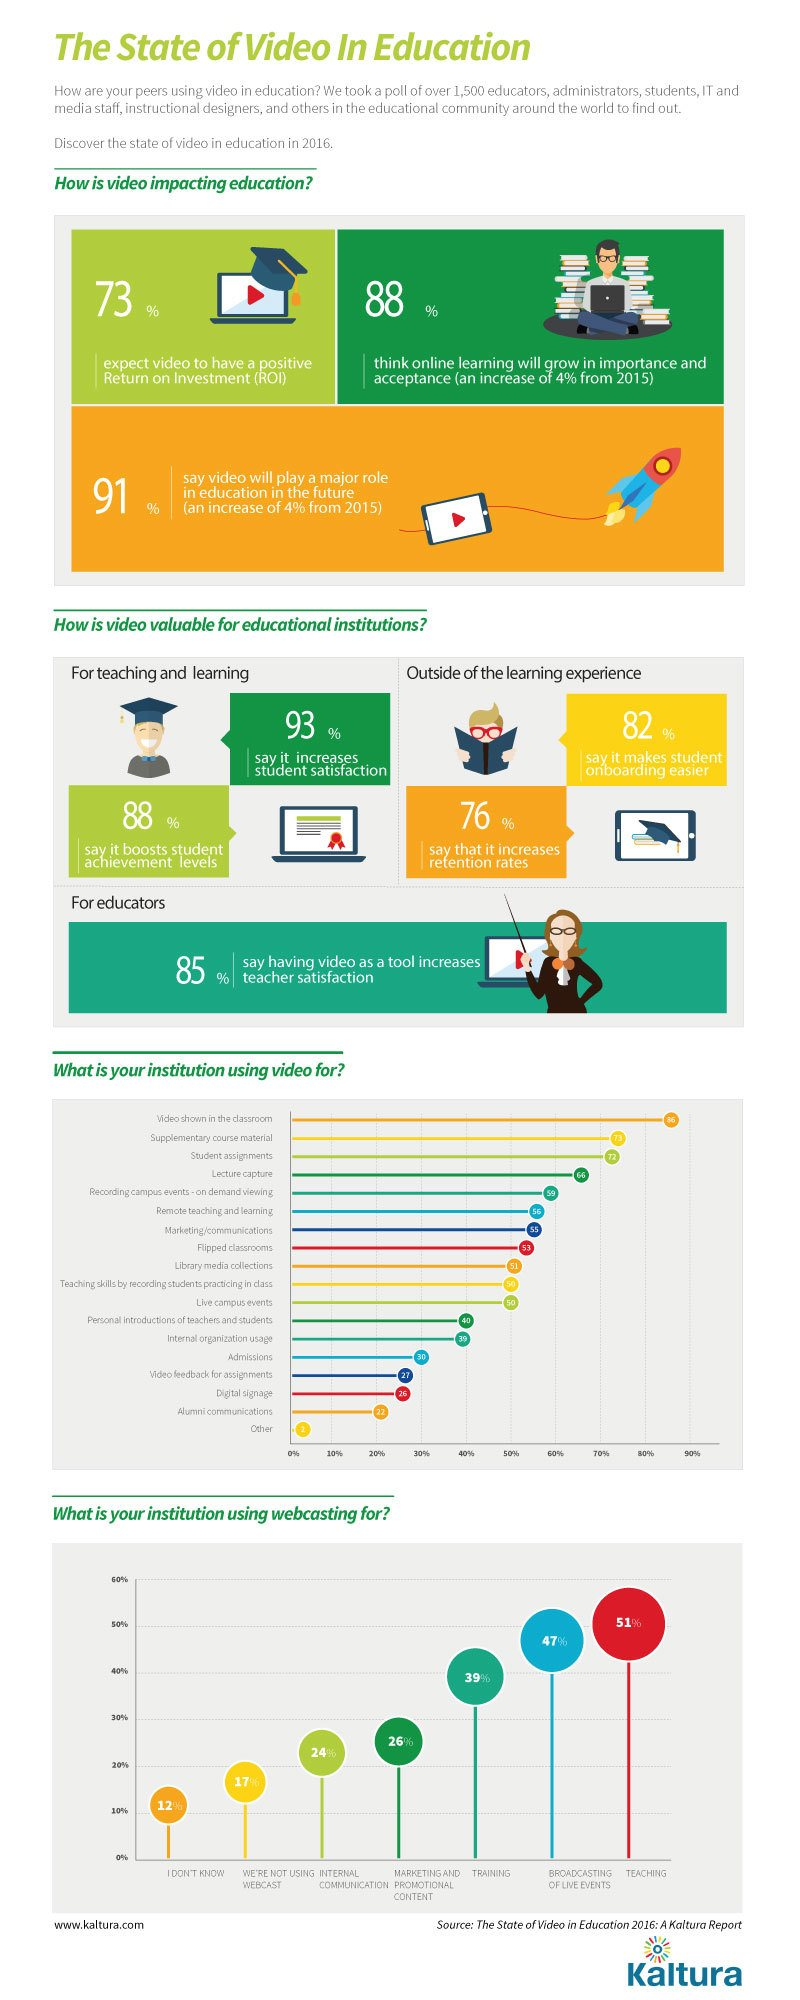 The State of Video in Education Infographic